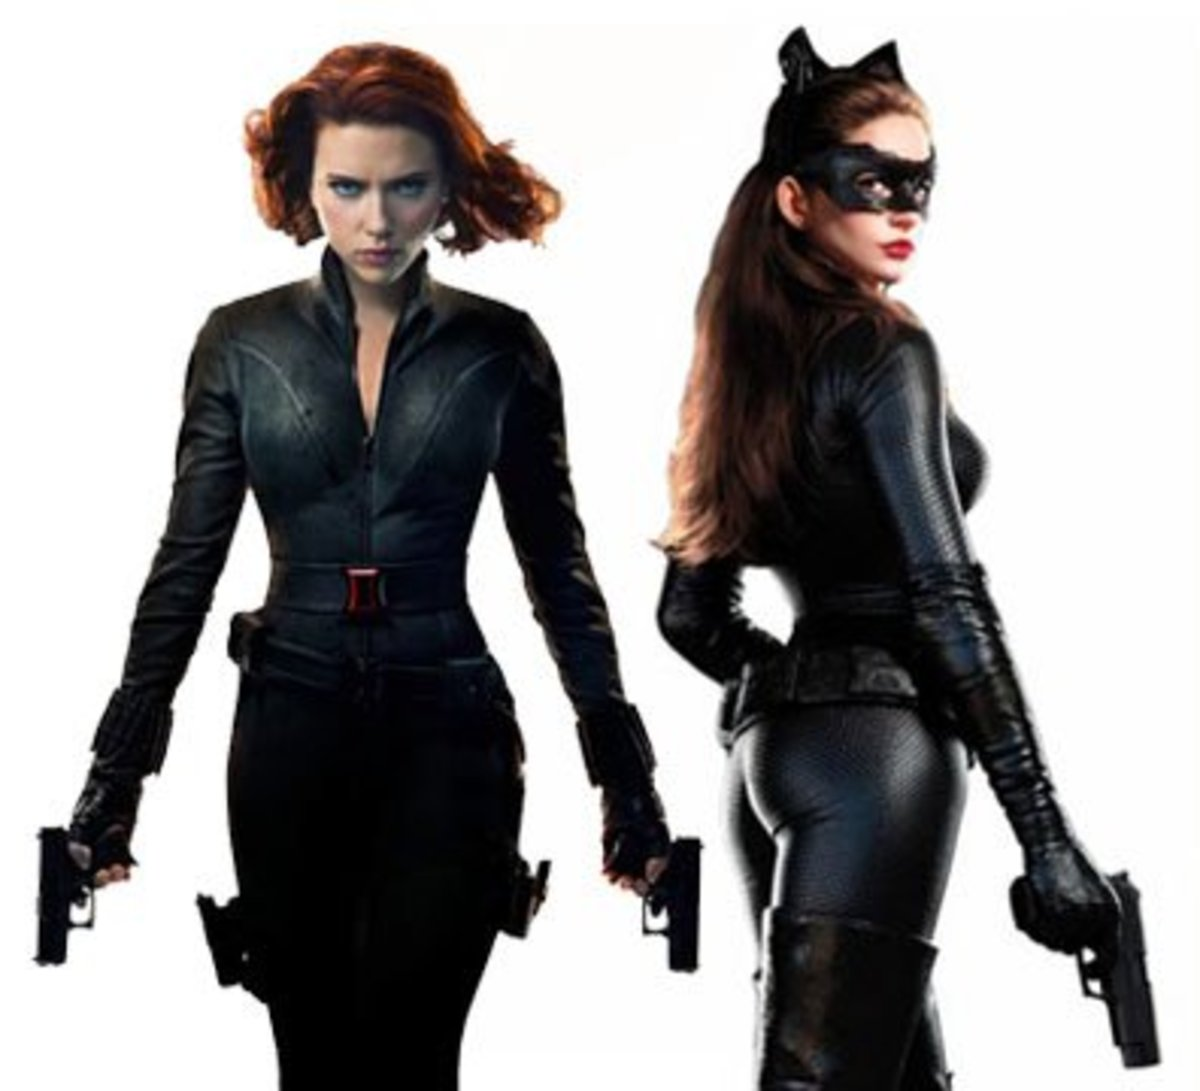 scarlett johansson as The Black Widow In The Avengers and Anne Hathaway as Catwoman in The Dark Knight Rises.